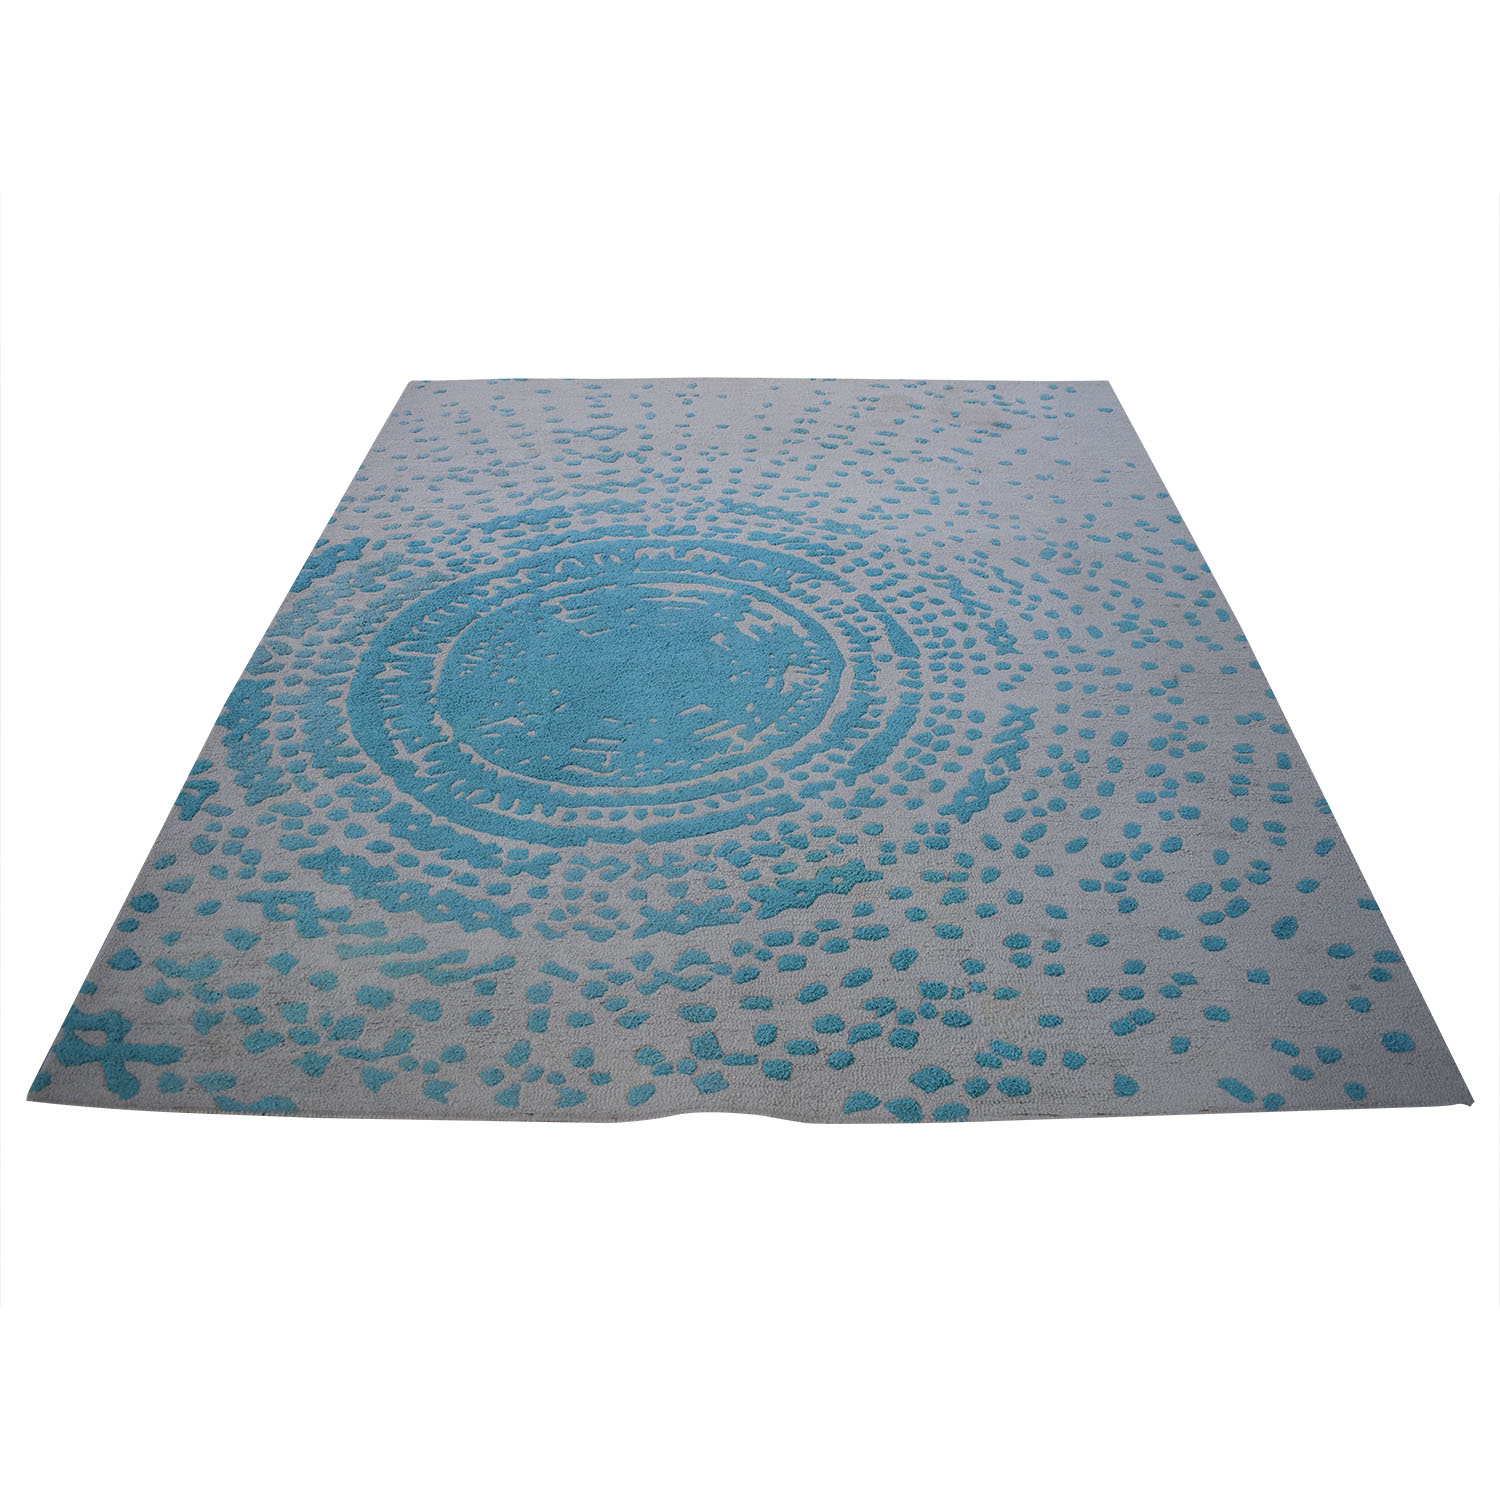 Global Views Global Views Cosmos Rug in Color Aqua nyc